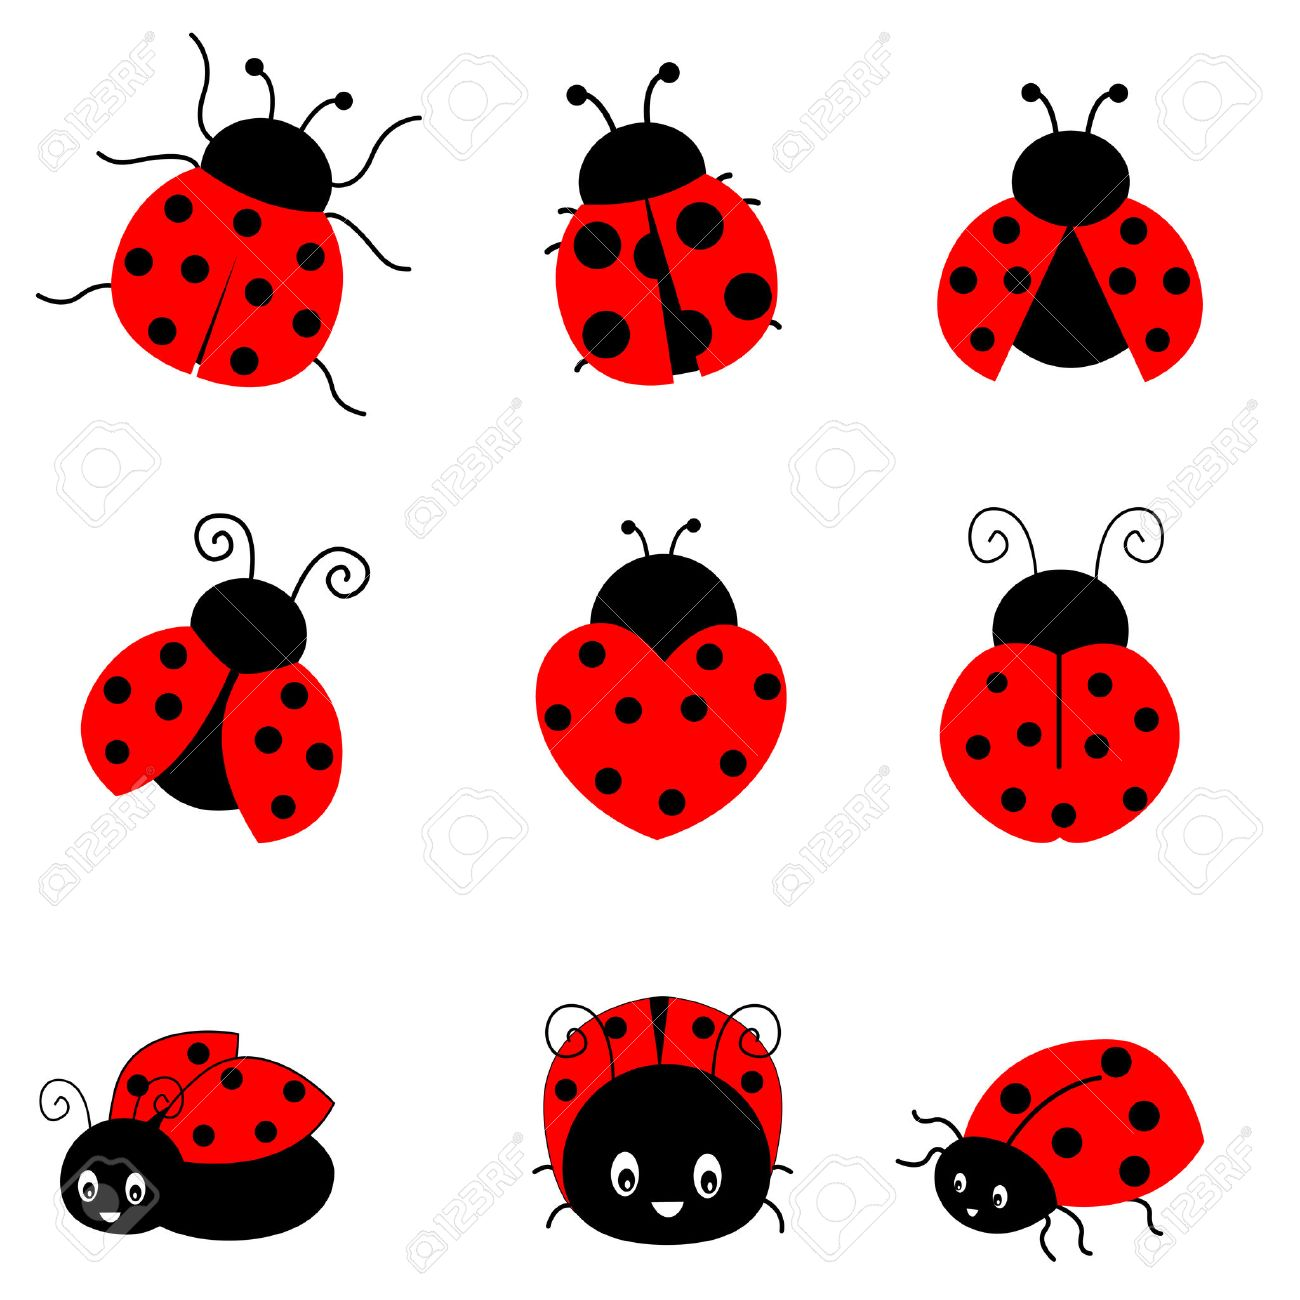 cute colorful ladybugs clipart collection isolated on white rh 123rf com Cartoon Fly Cartoon Bee